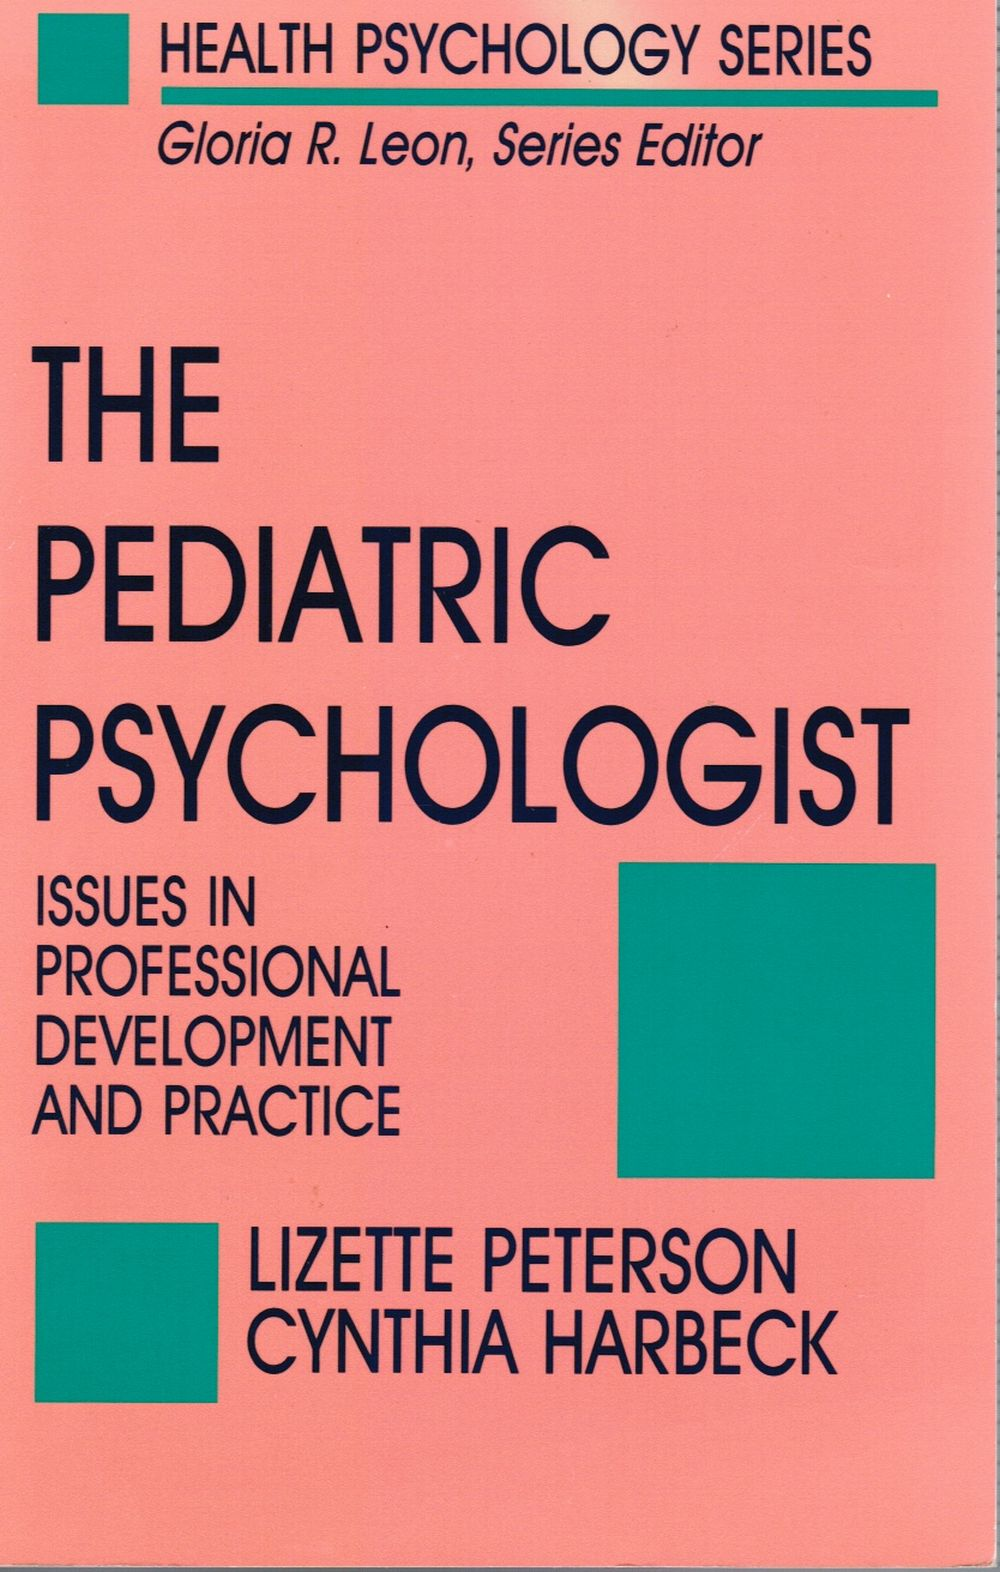 Image for The Pediatric Psychologist: Issues in Professional Development and Practice